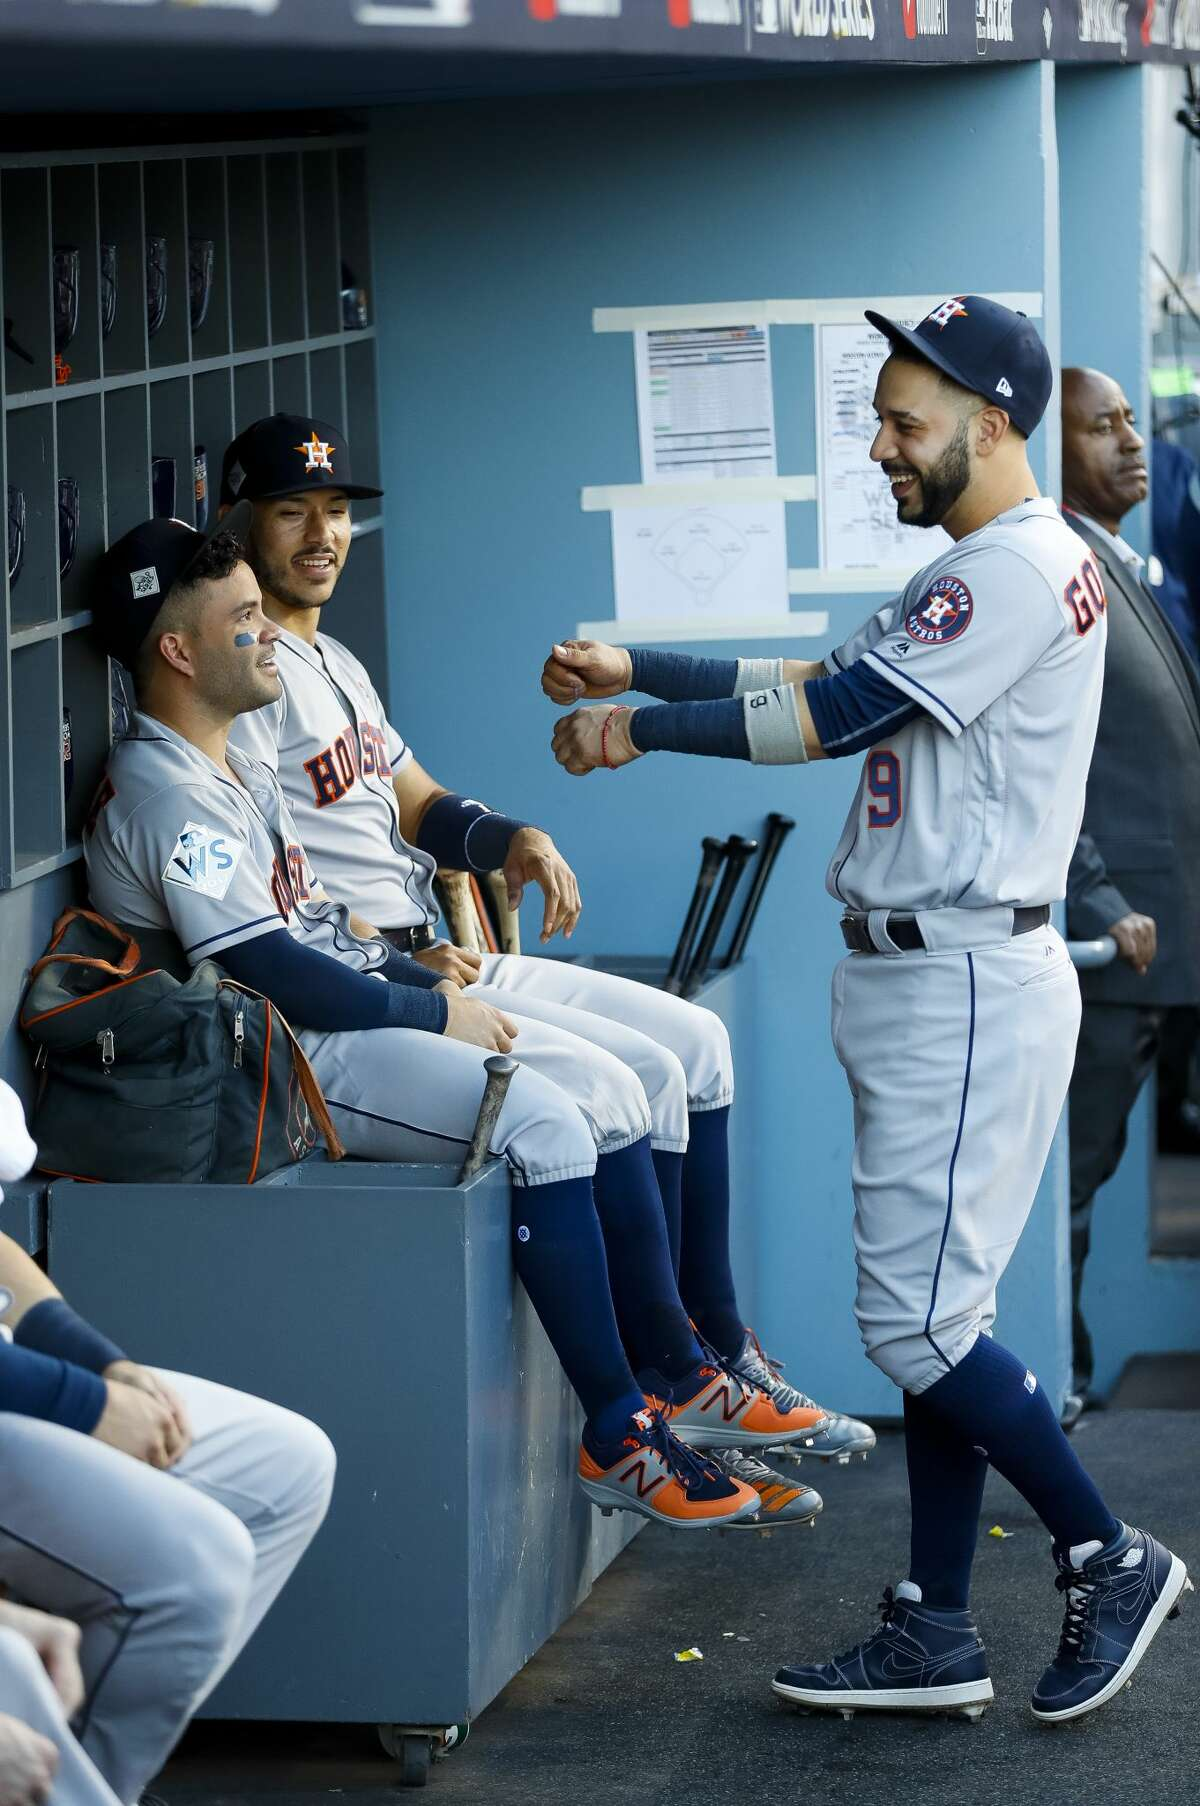 Houston Astros second baseman Jose Altuve (27), shortstop Carlos Correa (1) and left fielder Marwin Gonzalez (9) talk in the dugout before the beginning of Game 1 of the World Series at Dodger Stadium on Tuesday, Oct. 24, 2017, in Los Angeles. ( Karen Warren / Houston Chronicle )